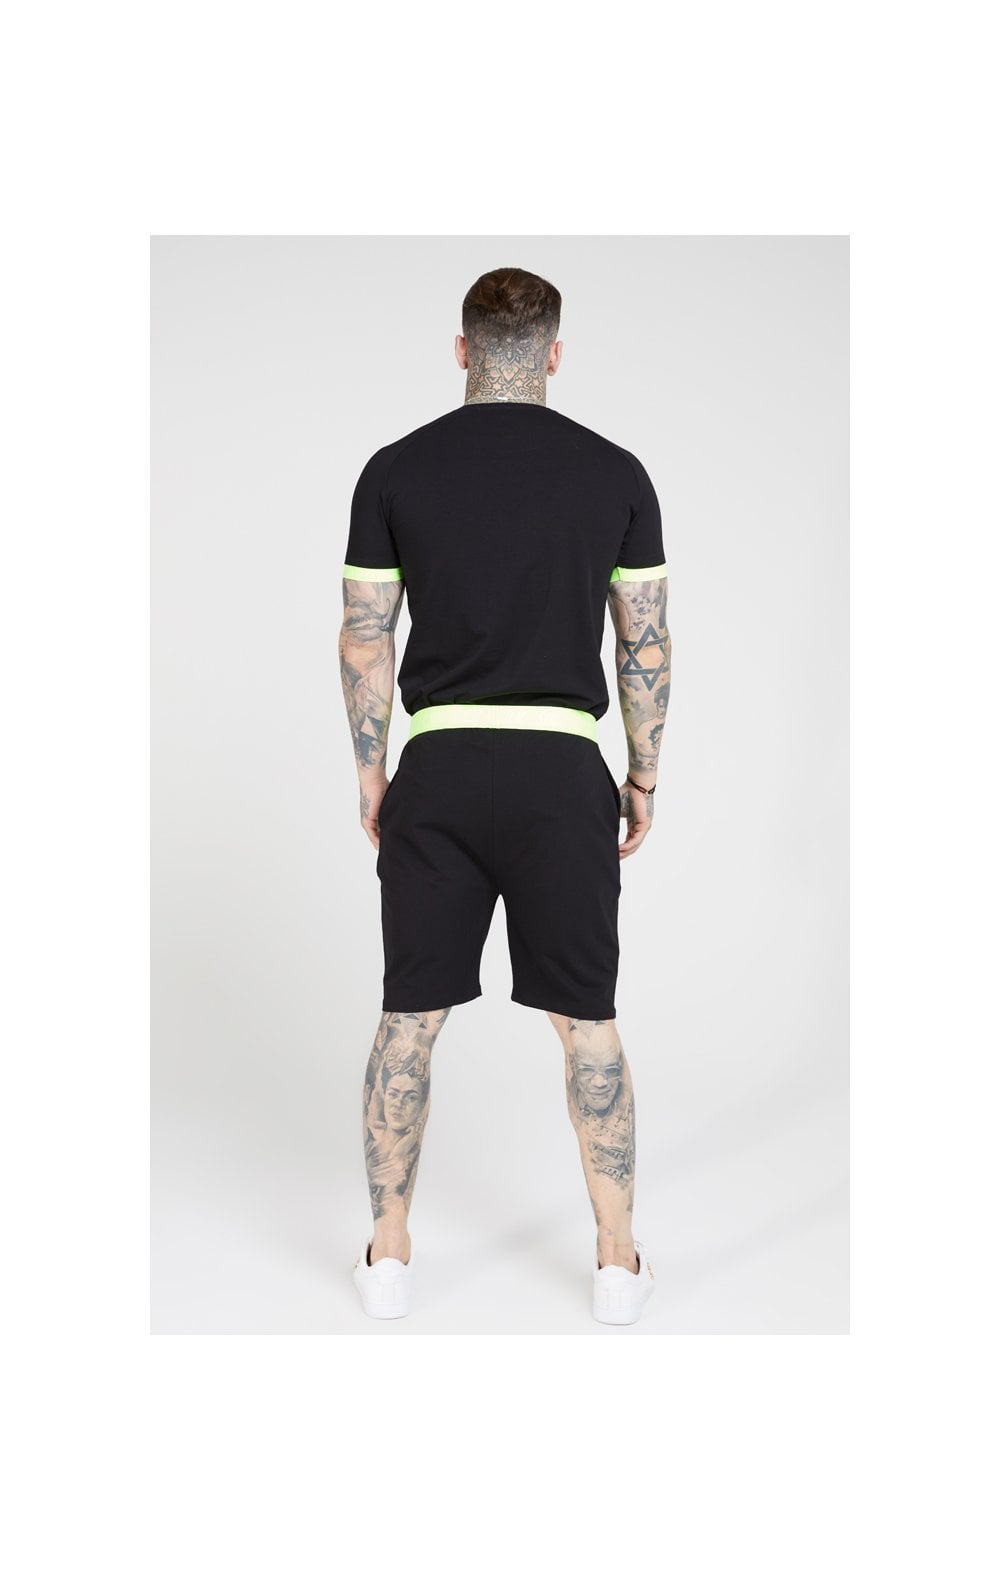 SikSilk S/S Neon Tech Tee – Black & Neon Yellow (5)